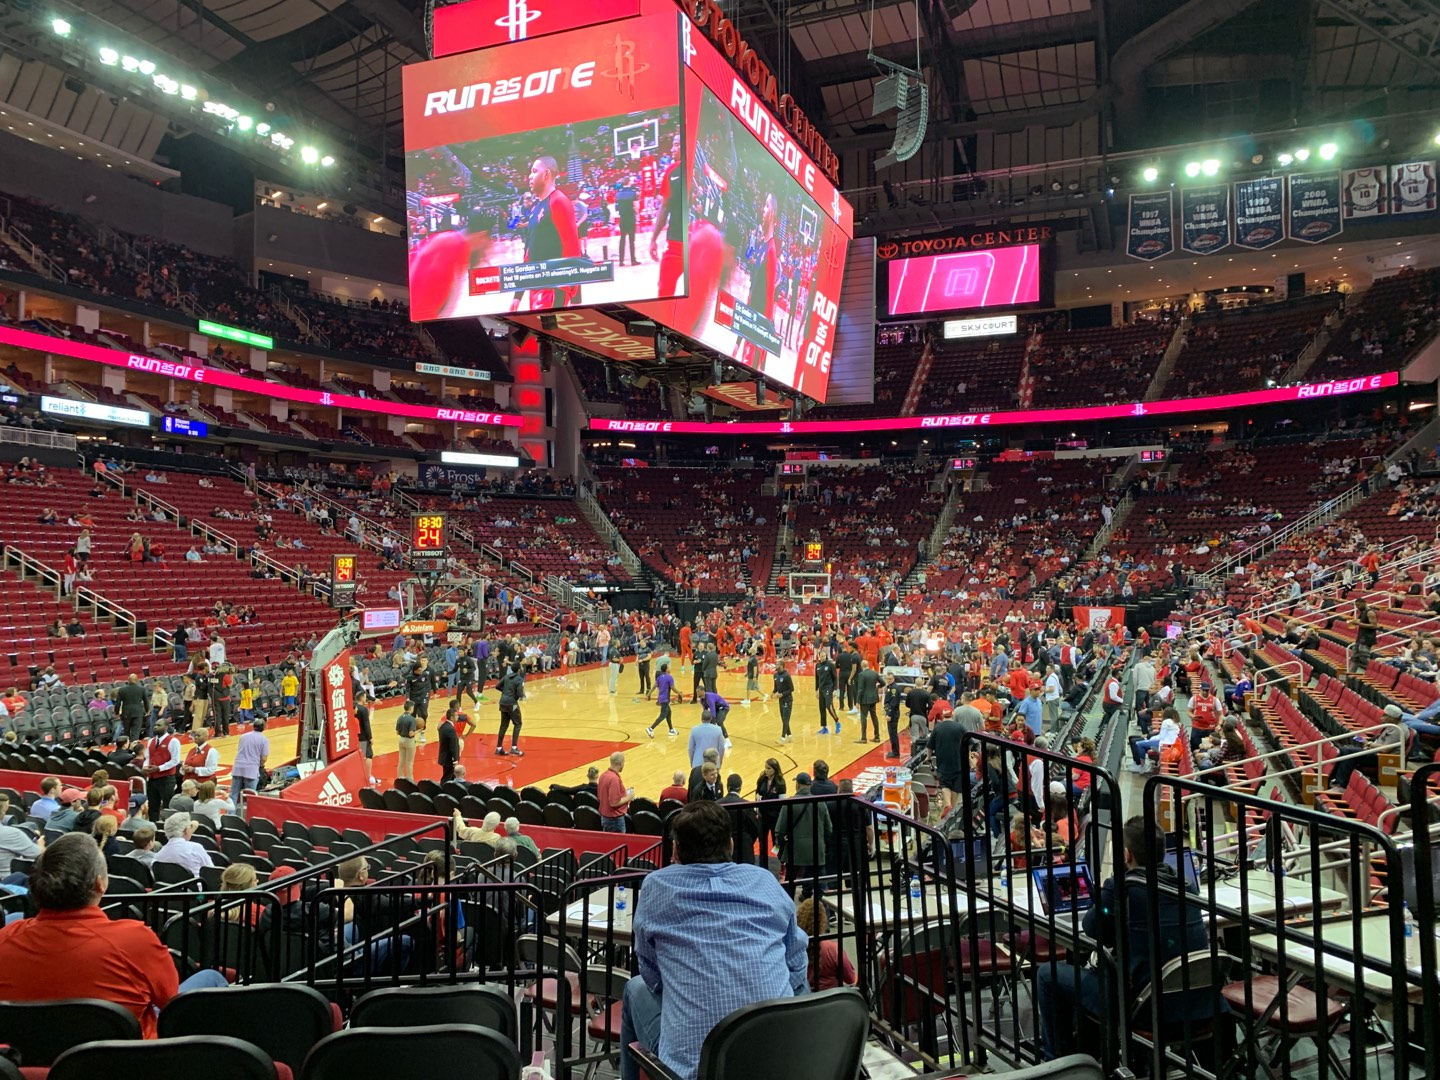 Toyota Center Section 125 Row 9 Seat 2